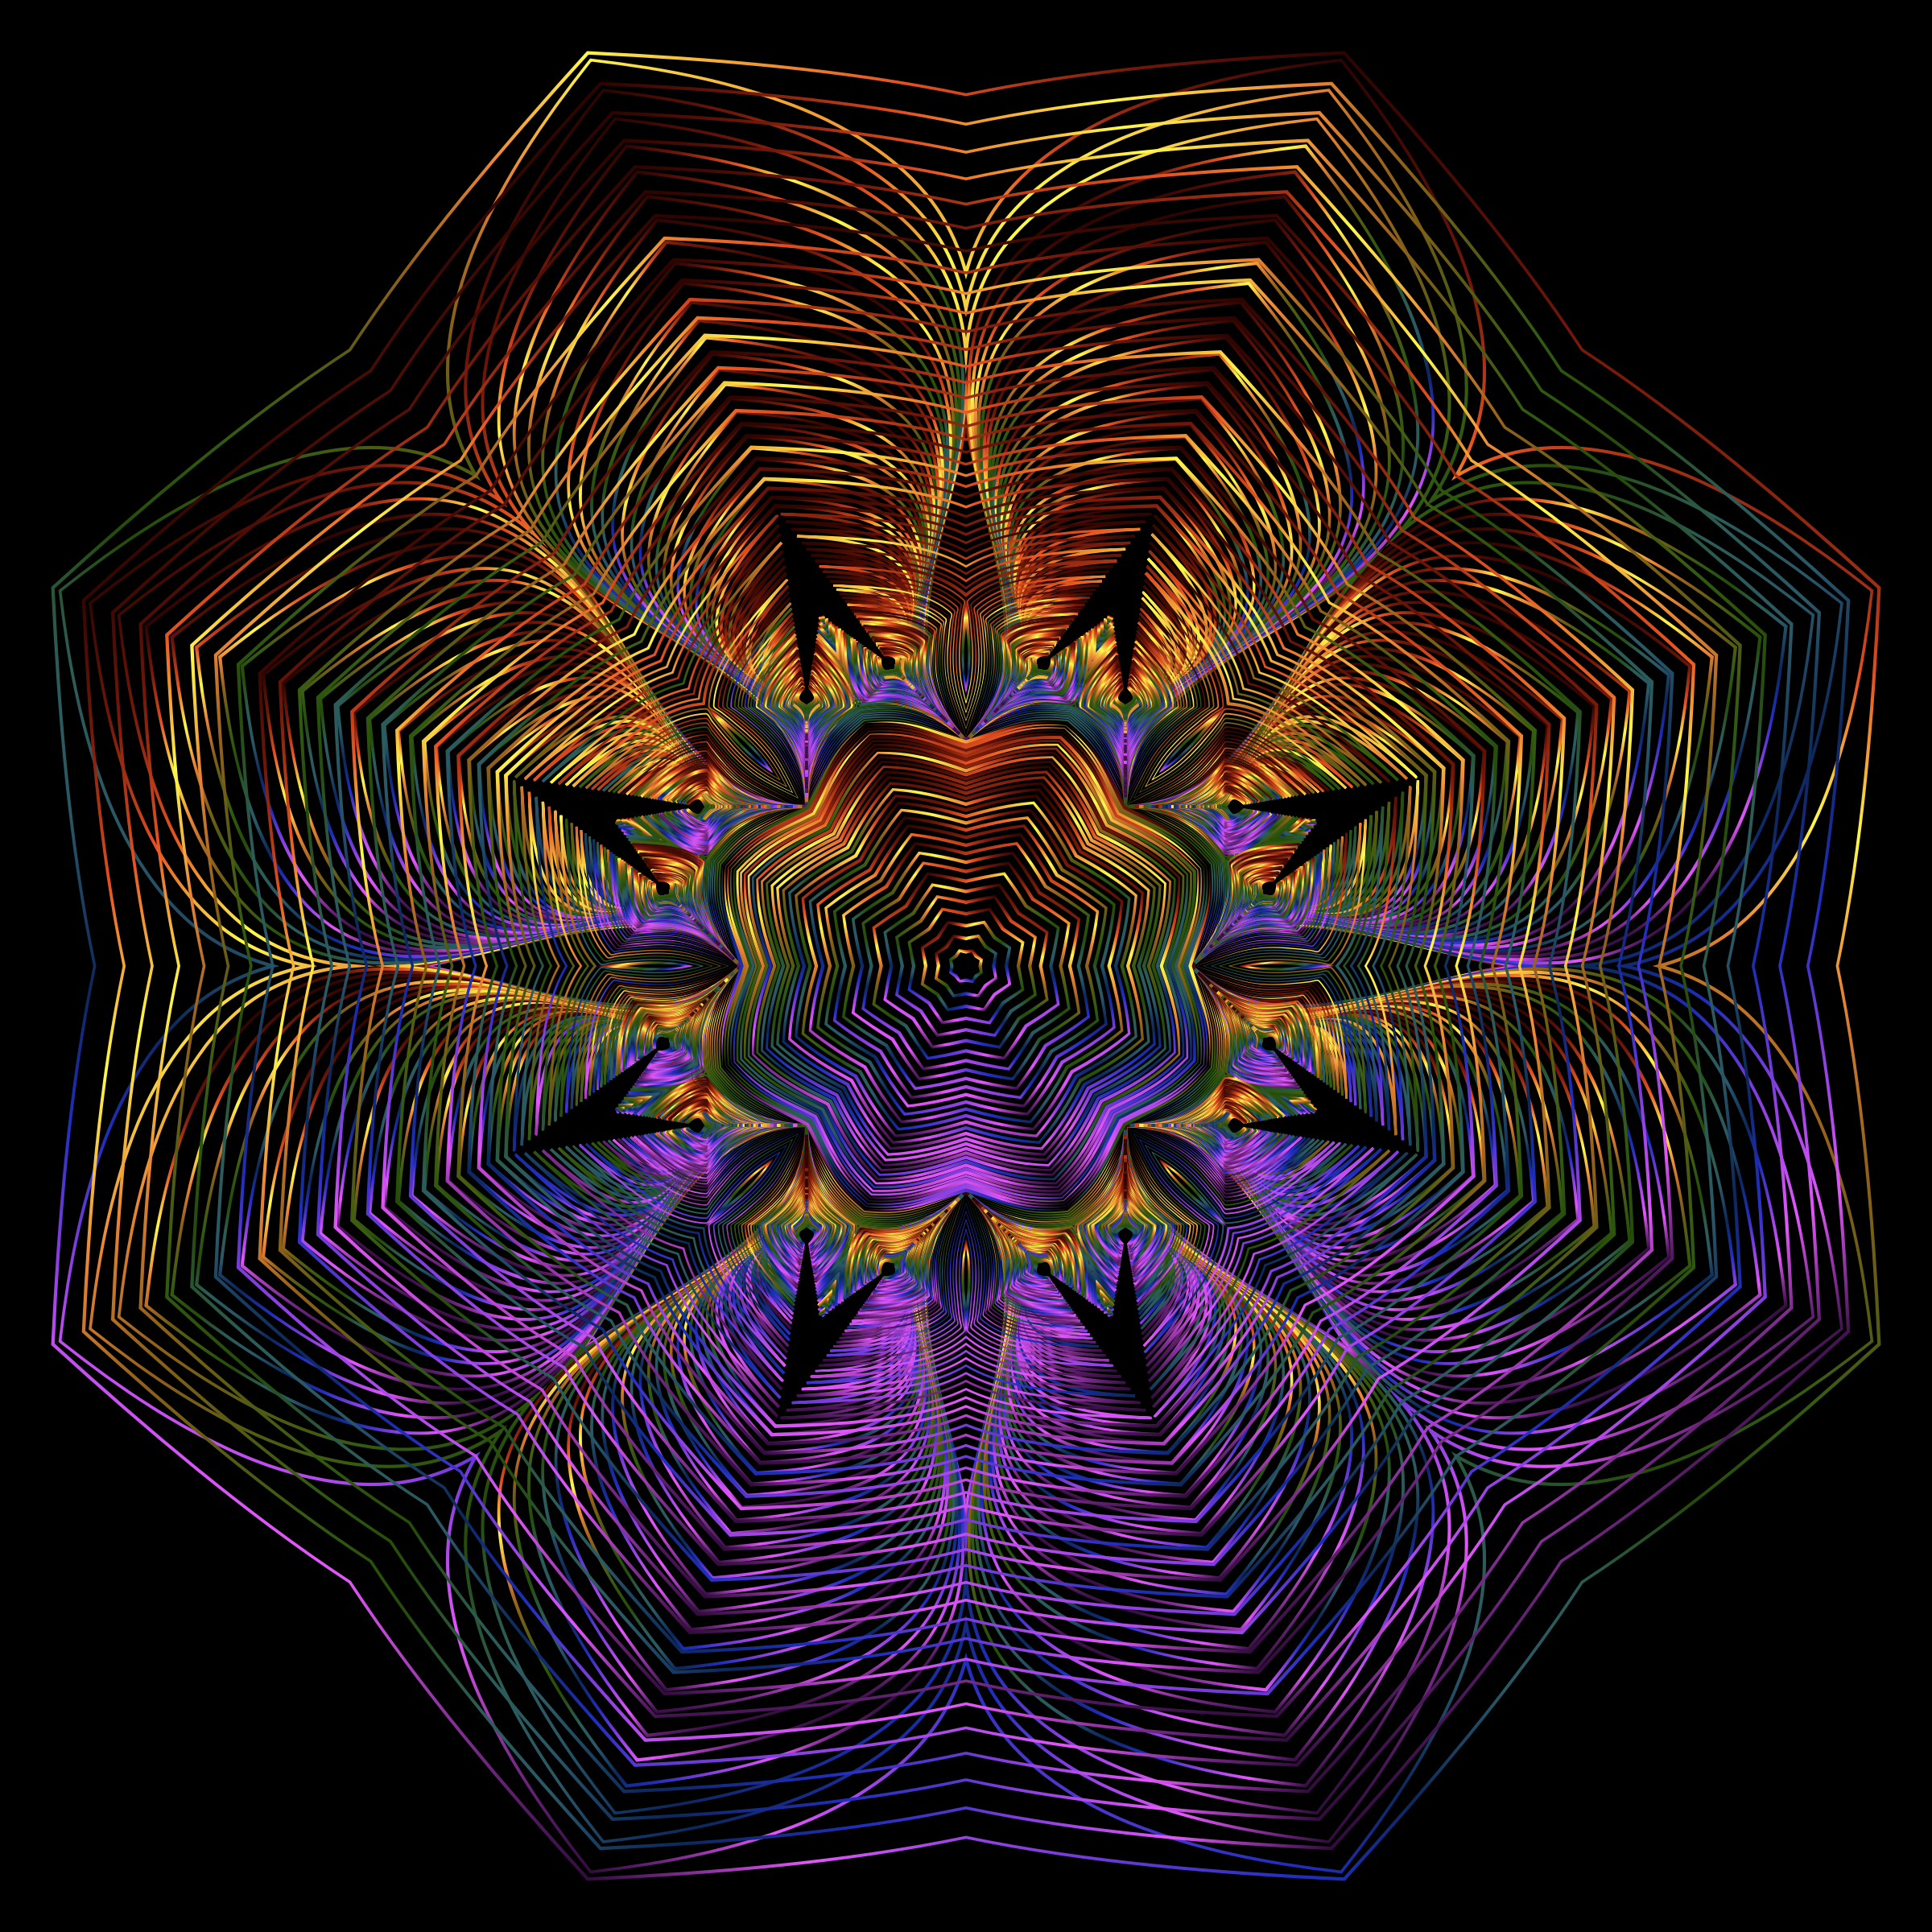 Prismatic Floral Line Art 2 by GDJ